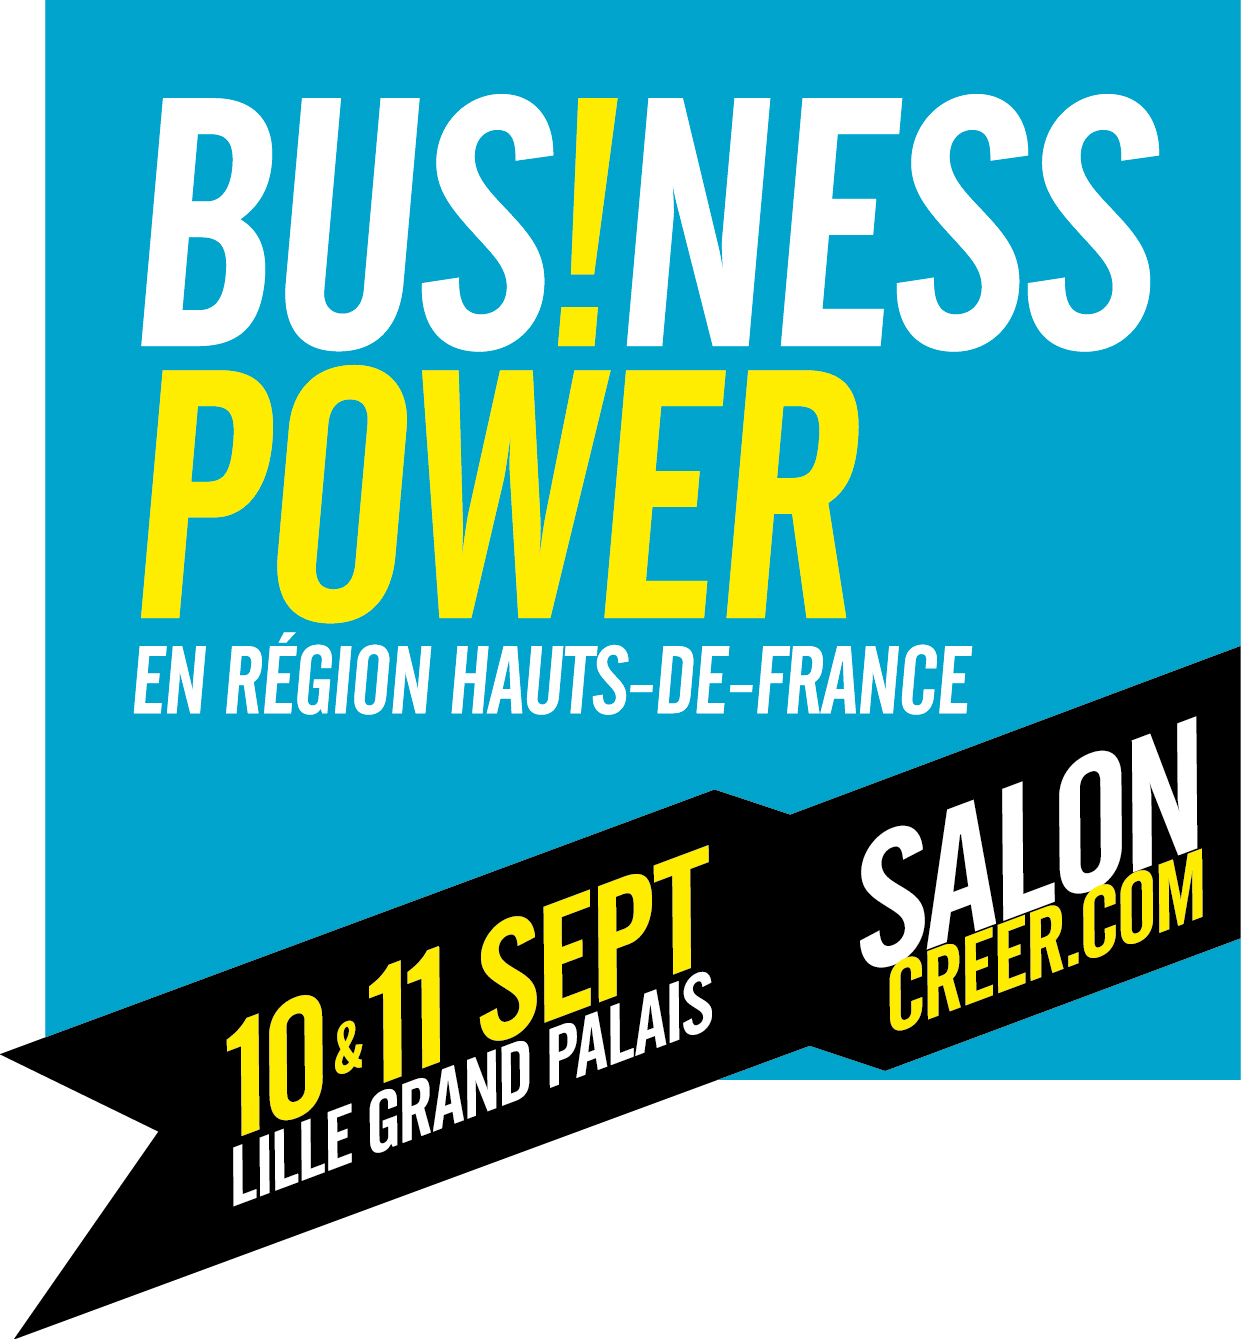 Salon Créer-Business Power > 10 et 11 septembre 2018